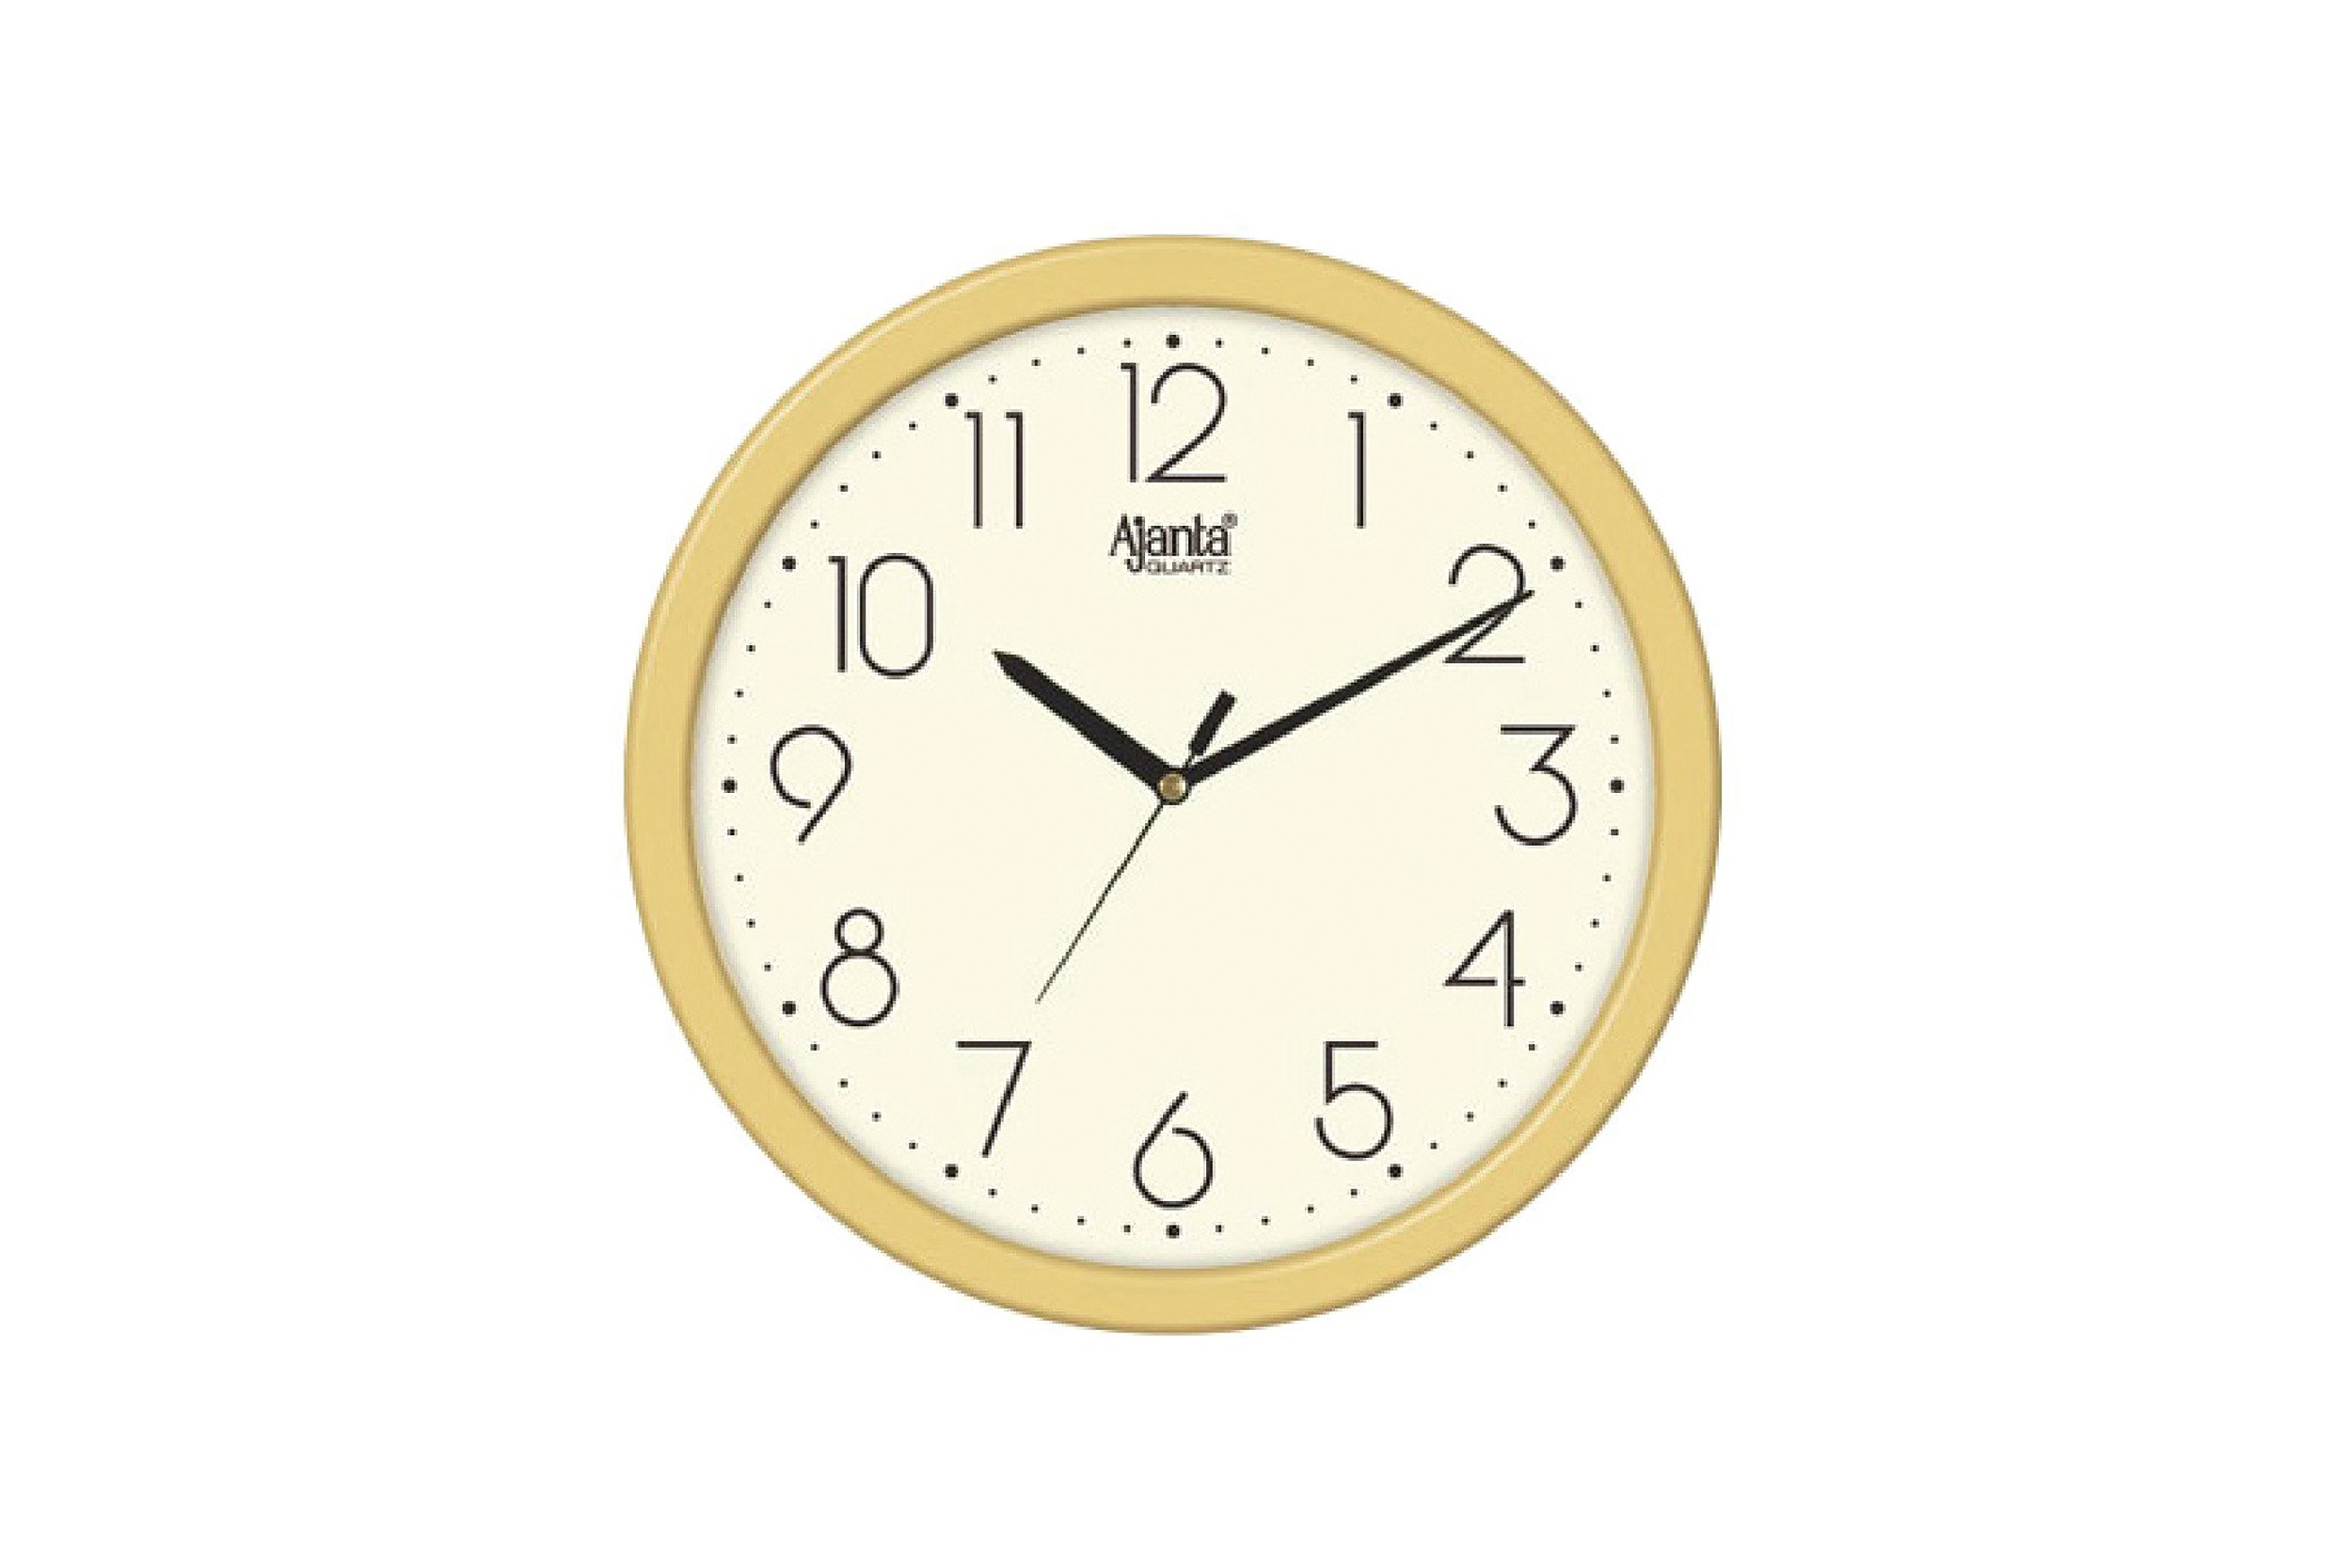 Ajanta Quartz Golden Ring Plastic Wall Clock-497